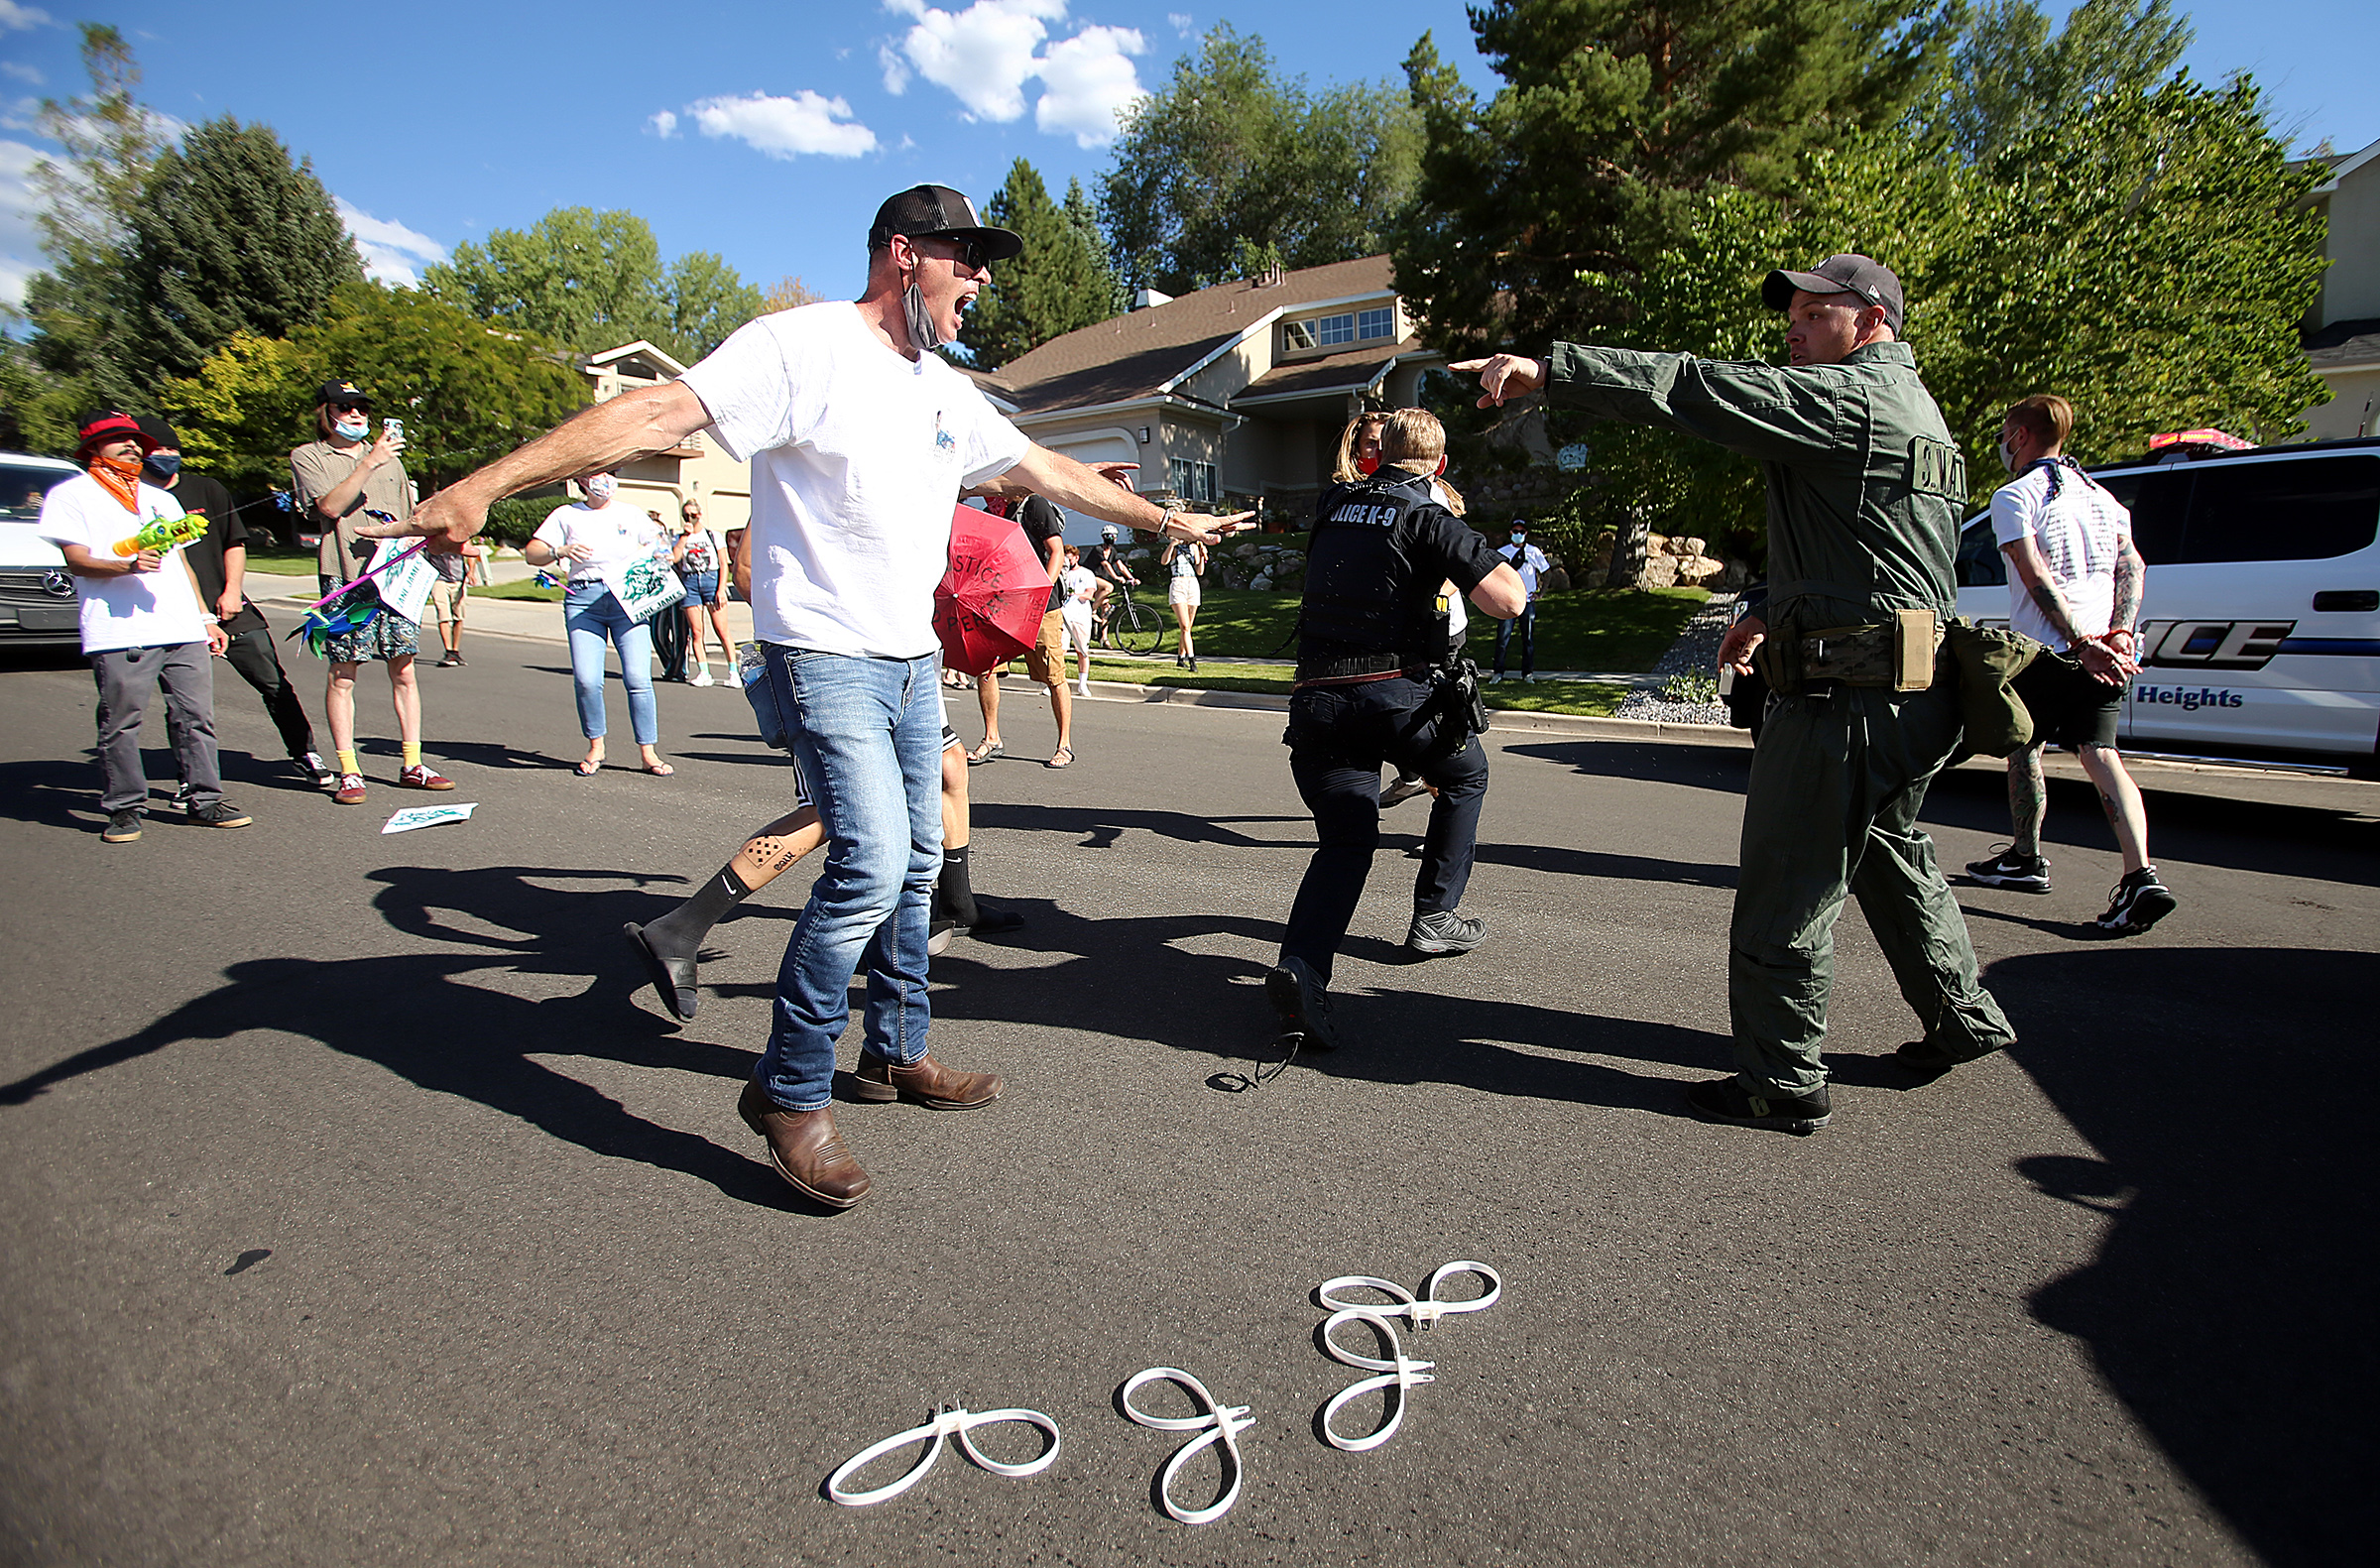 Aaron James, father of Zane James, yells at a police officer as protesters and police clash in the streets of Cottonwood Heights on Sunday, Aug. 2, 2020. The group wasmarching on 6710 South,down the street from where the 19-year-old Zane James was shot and killed by Cottonwood Heights police in 2018 after allegedly robbing two stores,when police blocked them at Cristobal Street and a confrontation ensued. Multiple marchers, including Aaron James, were arrested.